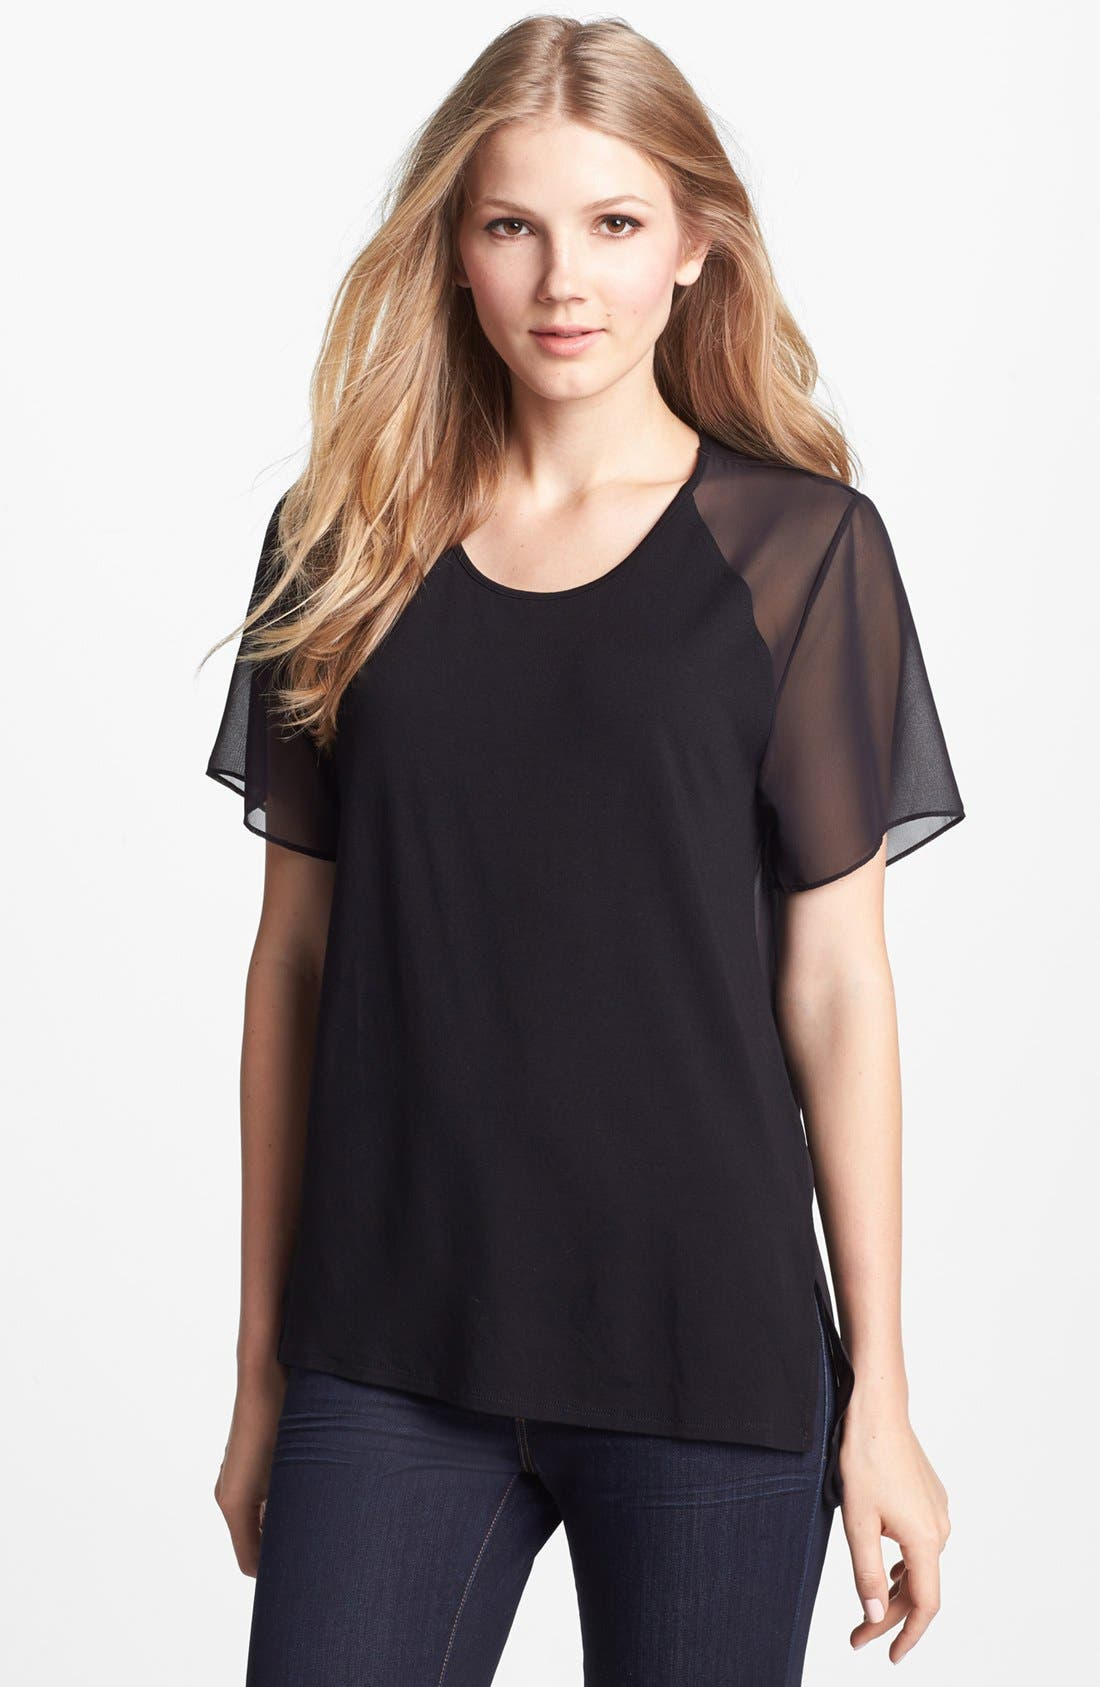 Alternate Image 1 Selected - Vince Camuto Chiffon Sleeve Mixed Media Tee